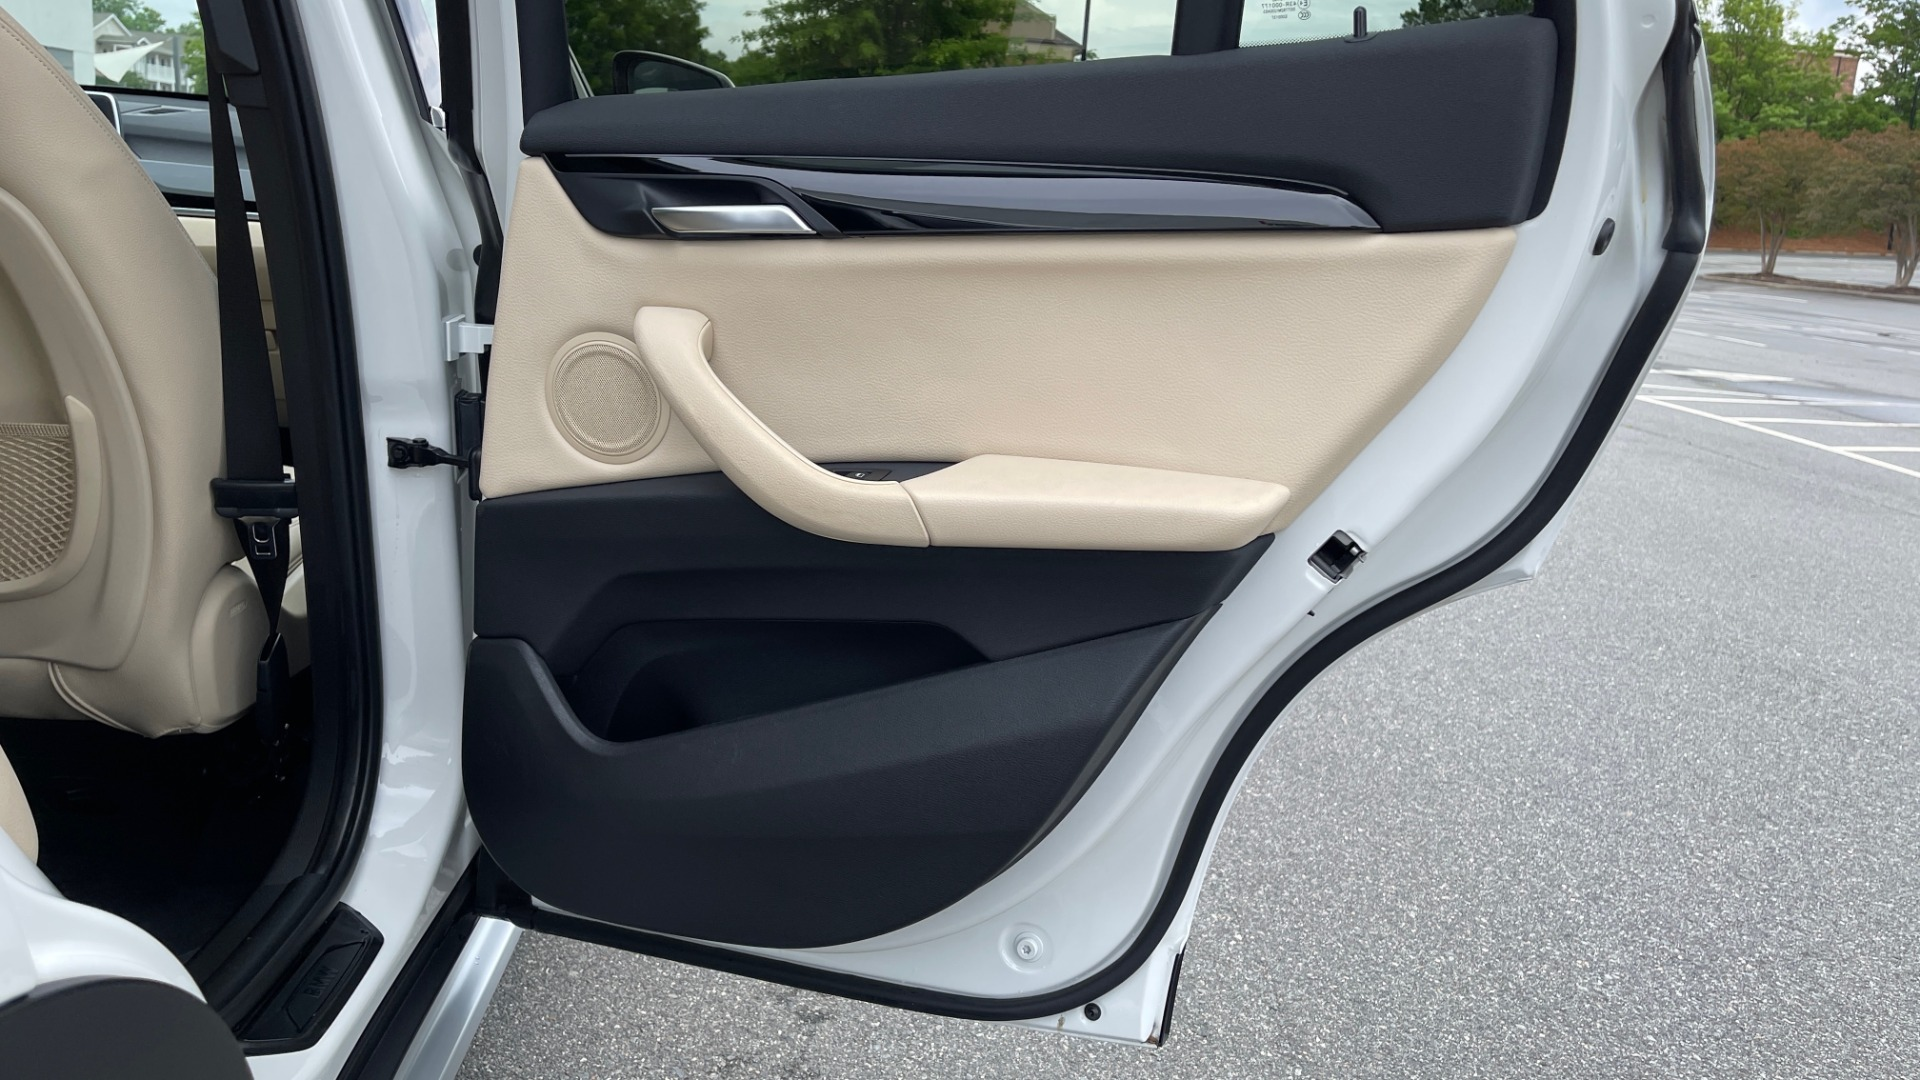 Used 2018 BMW X1 XDRIVE28I / CONV PKG / PANO-ROOF / HTD STS / PARK ASST / REARVIEW for sale $30,995 at Formula Imports in Charlotte NC 28227 76